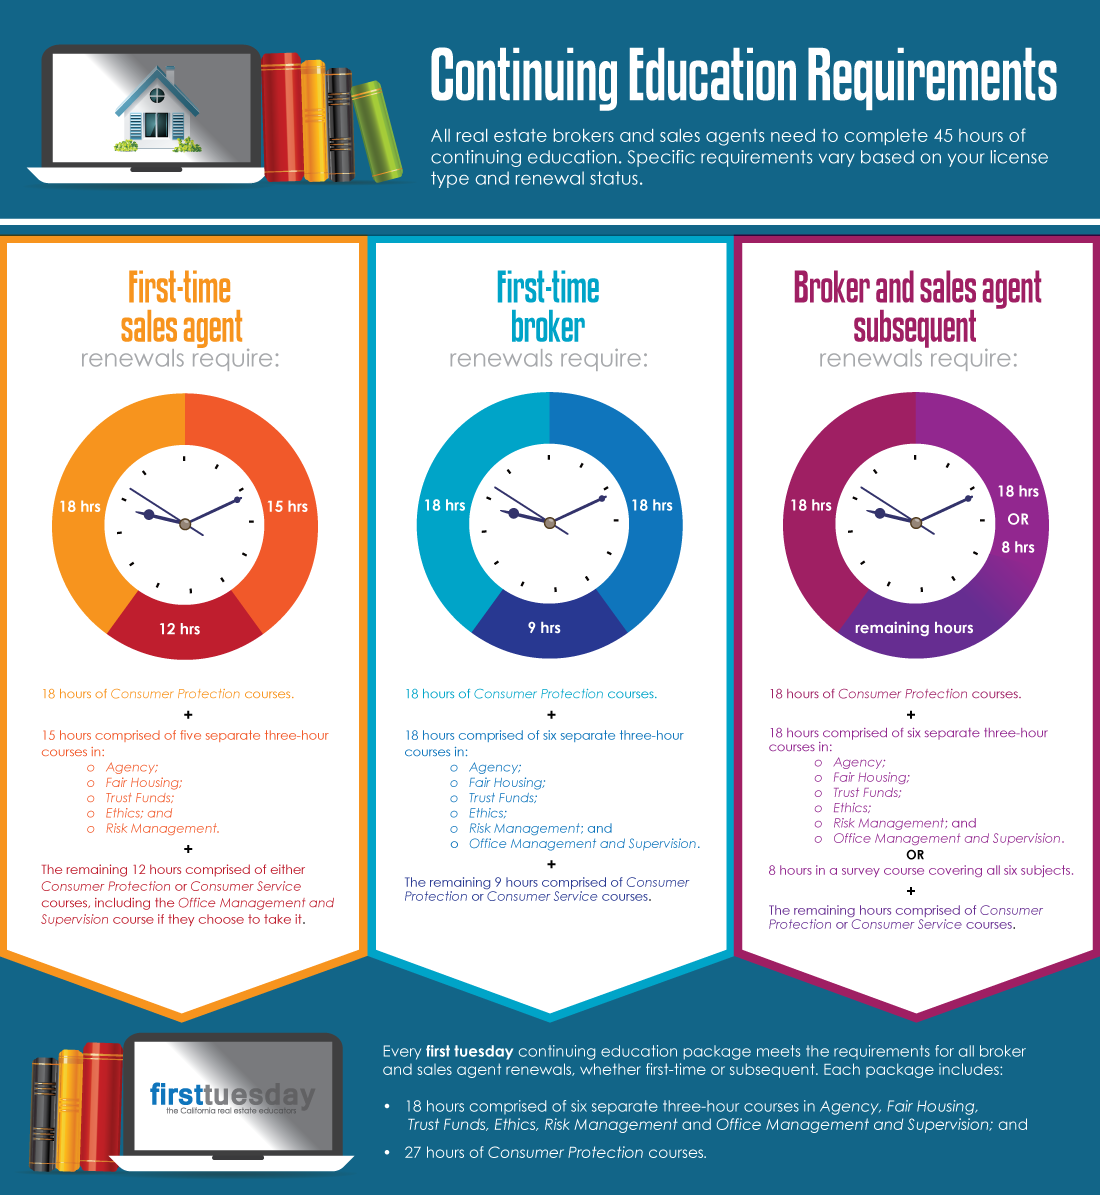 CE Requirements Infographic